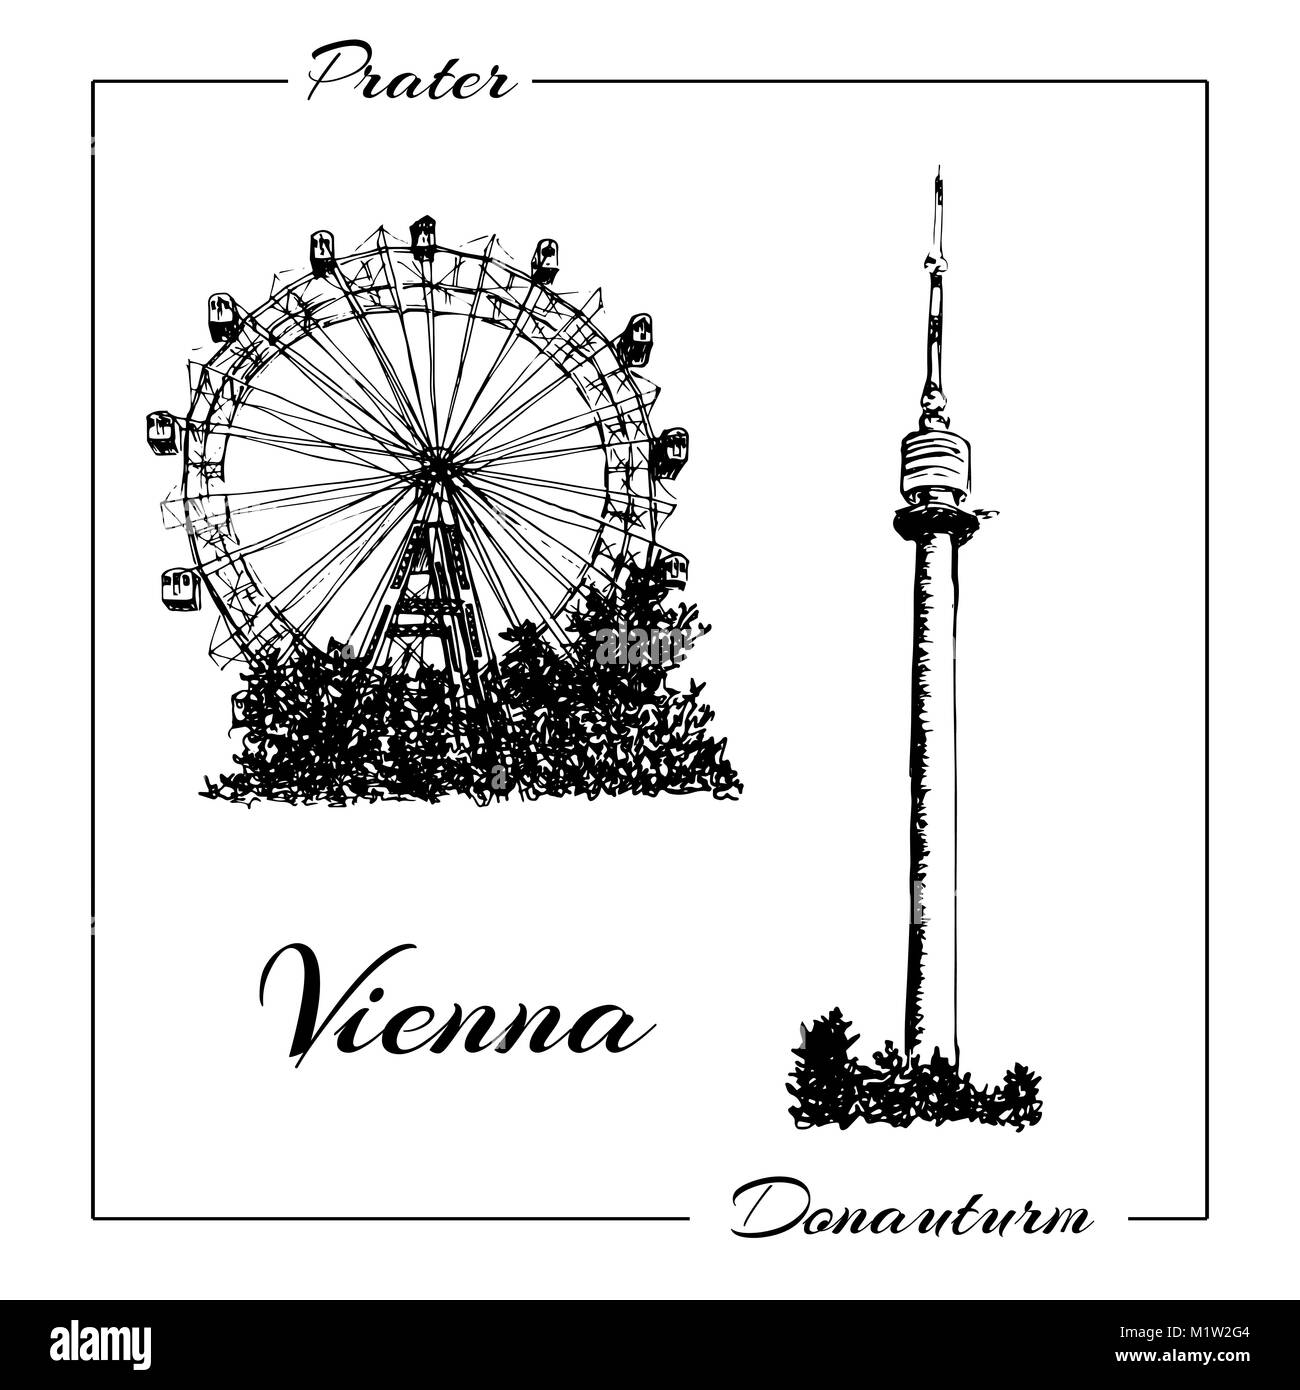 Ferris wheel cut out stock images pictures alamy vienna symbol vector hand drawn ink pen sketch illustration donauturm prater stock biocorpaavc